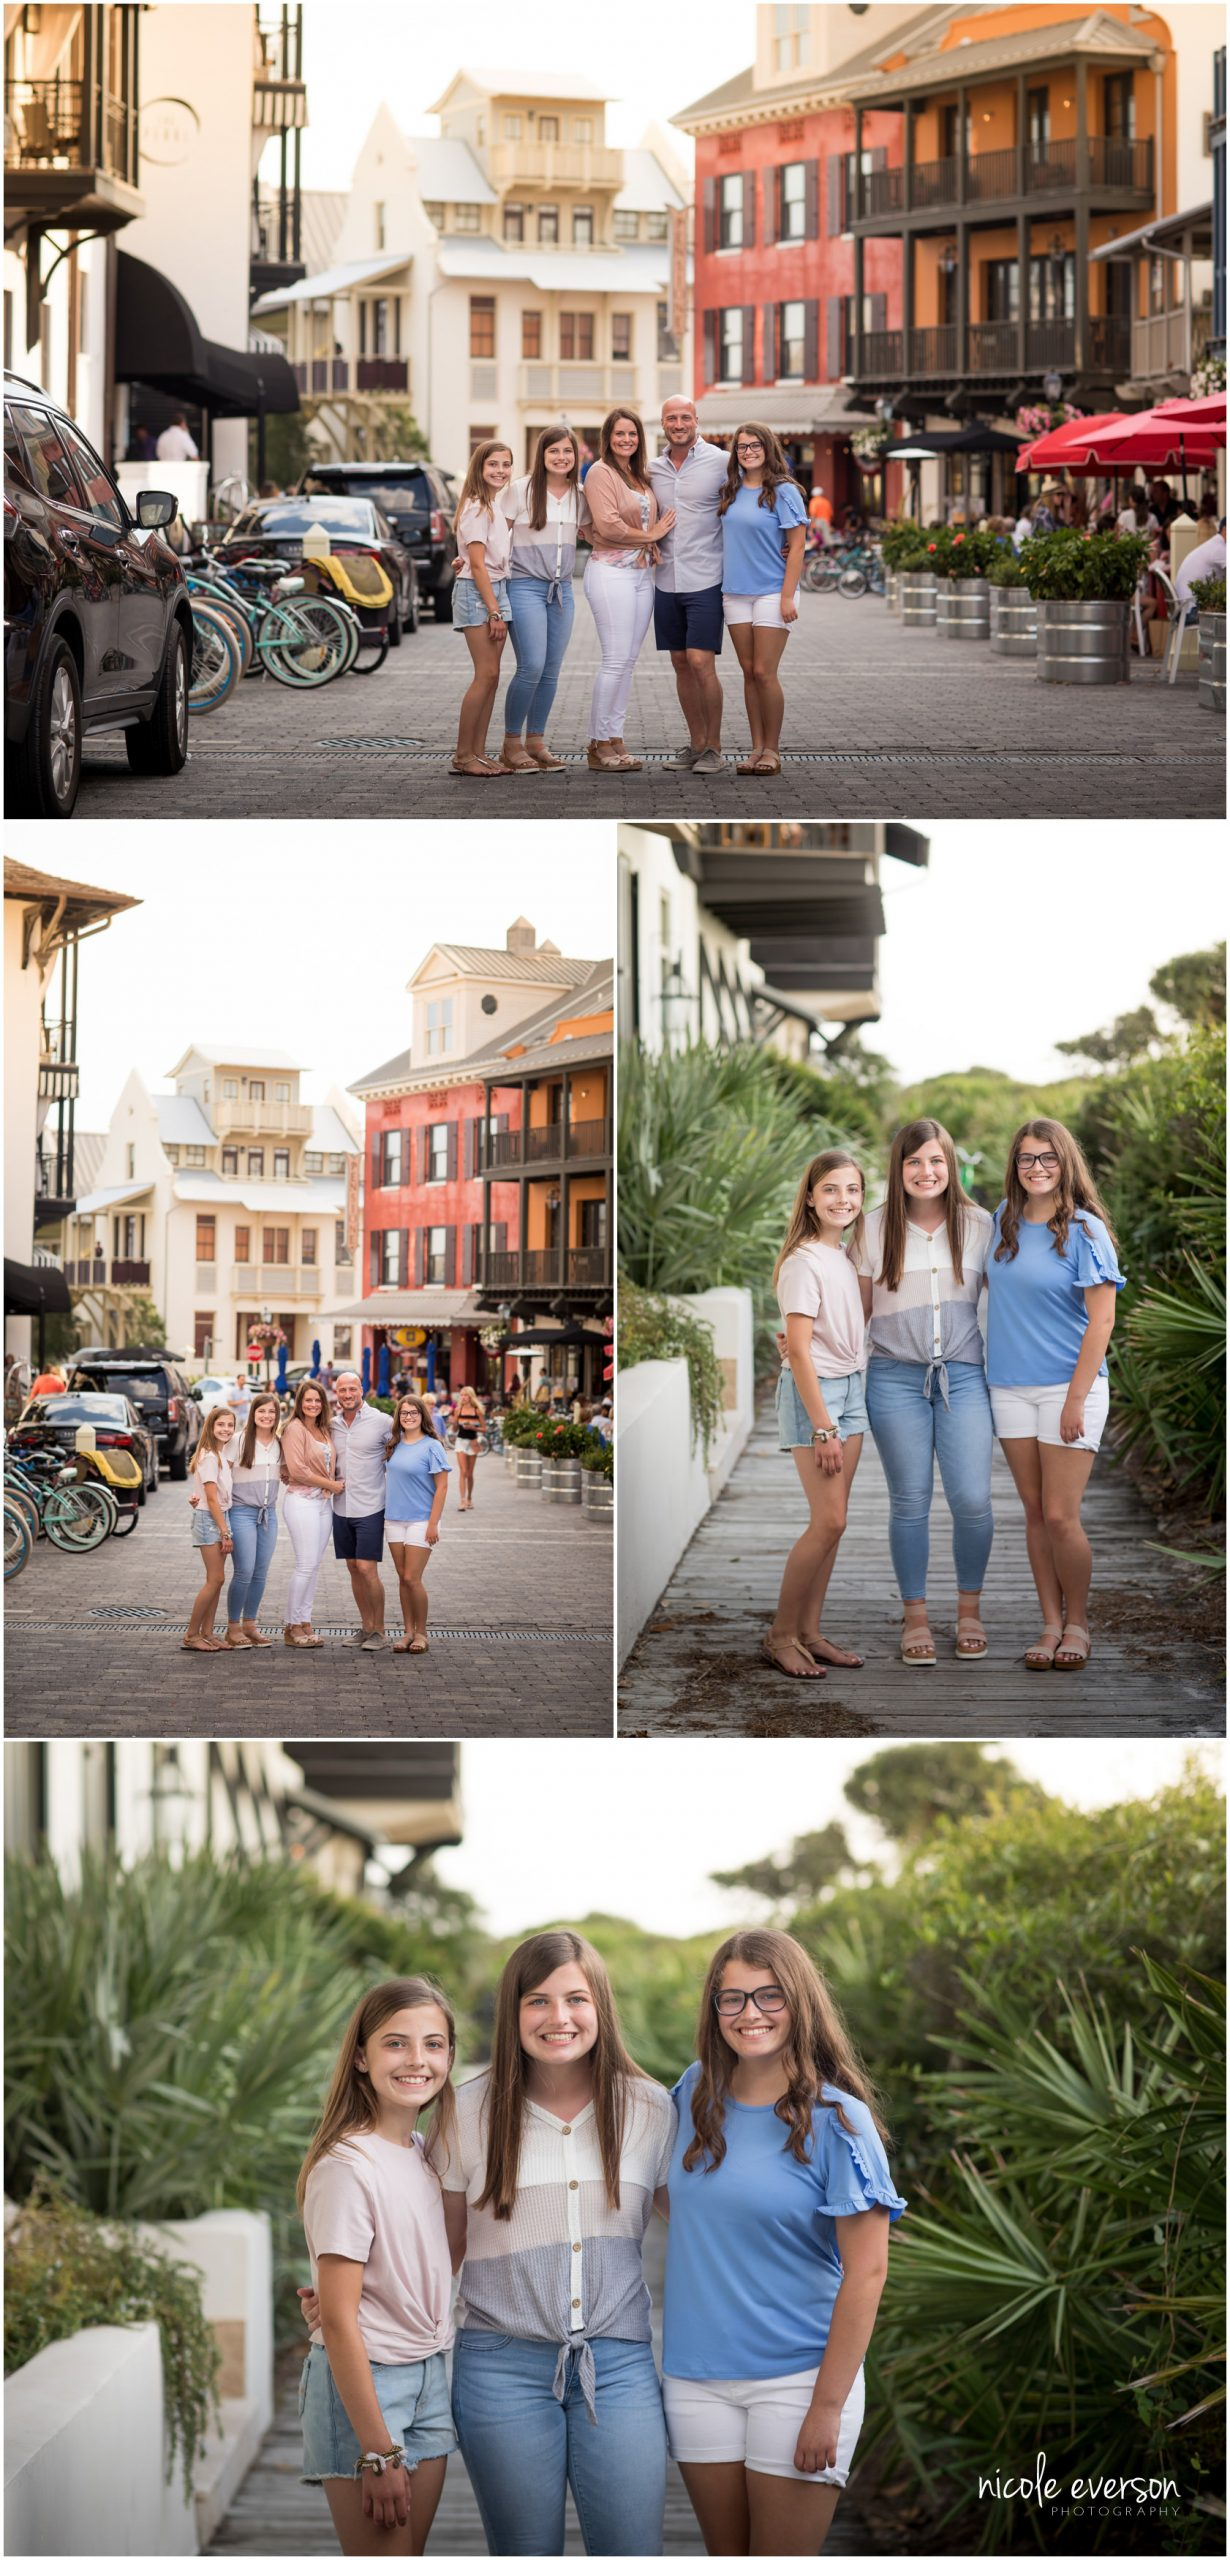 Family photos downtown Rosemary Beach. Nicole Everson Photography.